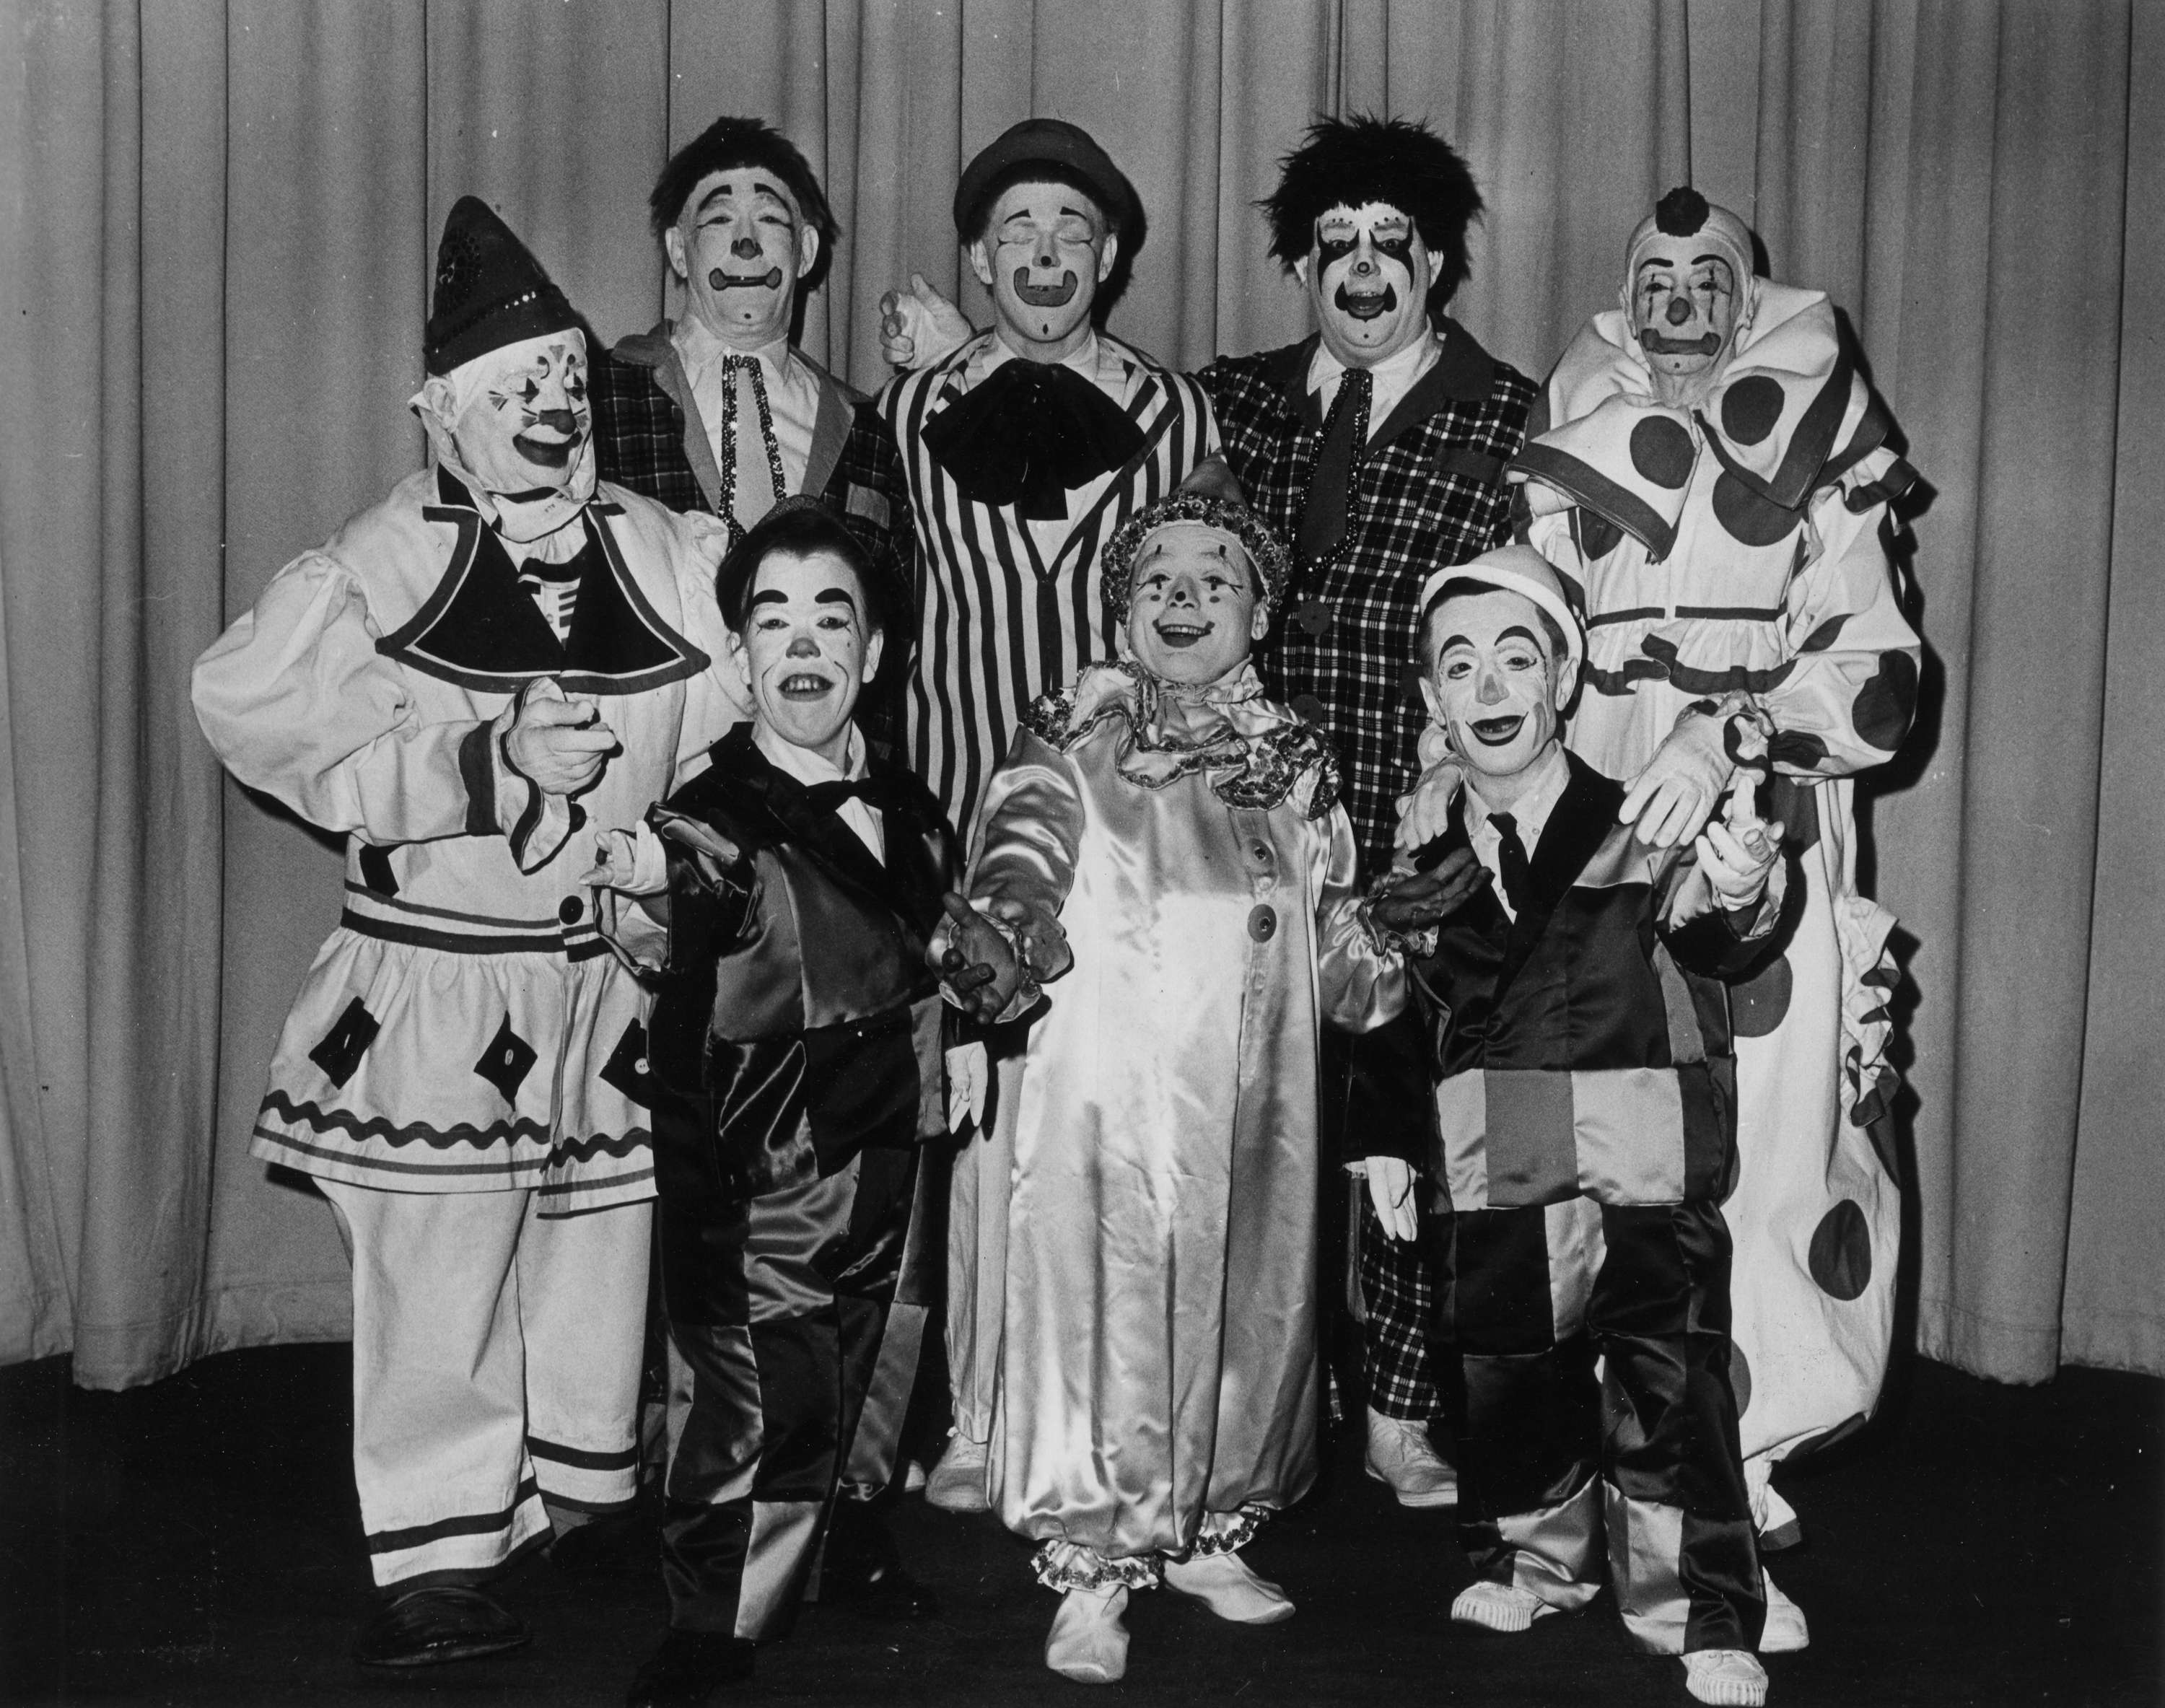 8 clowns in a group pose